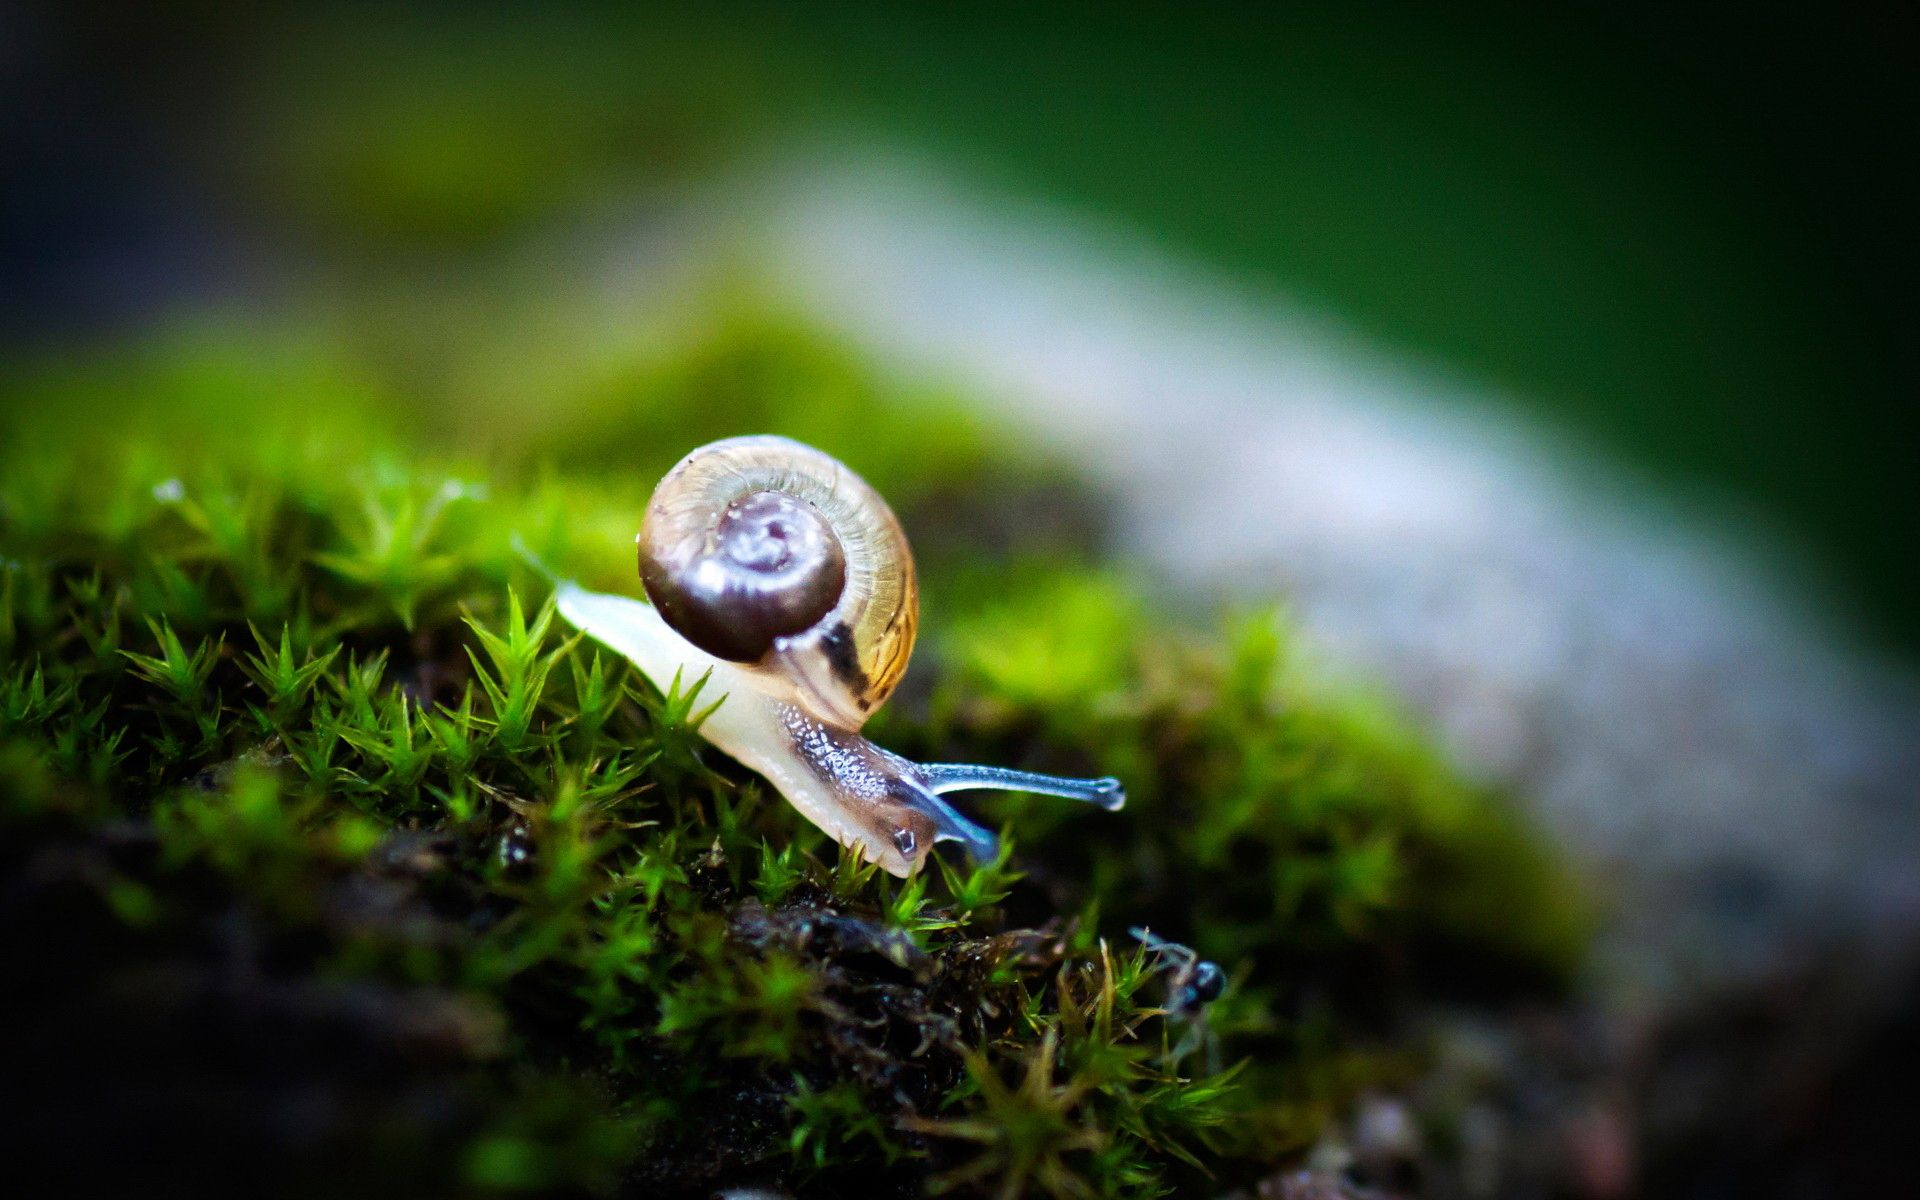 Snail Wallpapers, 47 Free Snail Wallpapers